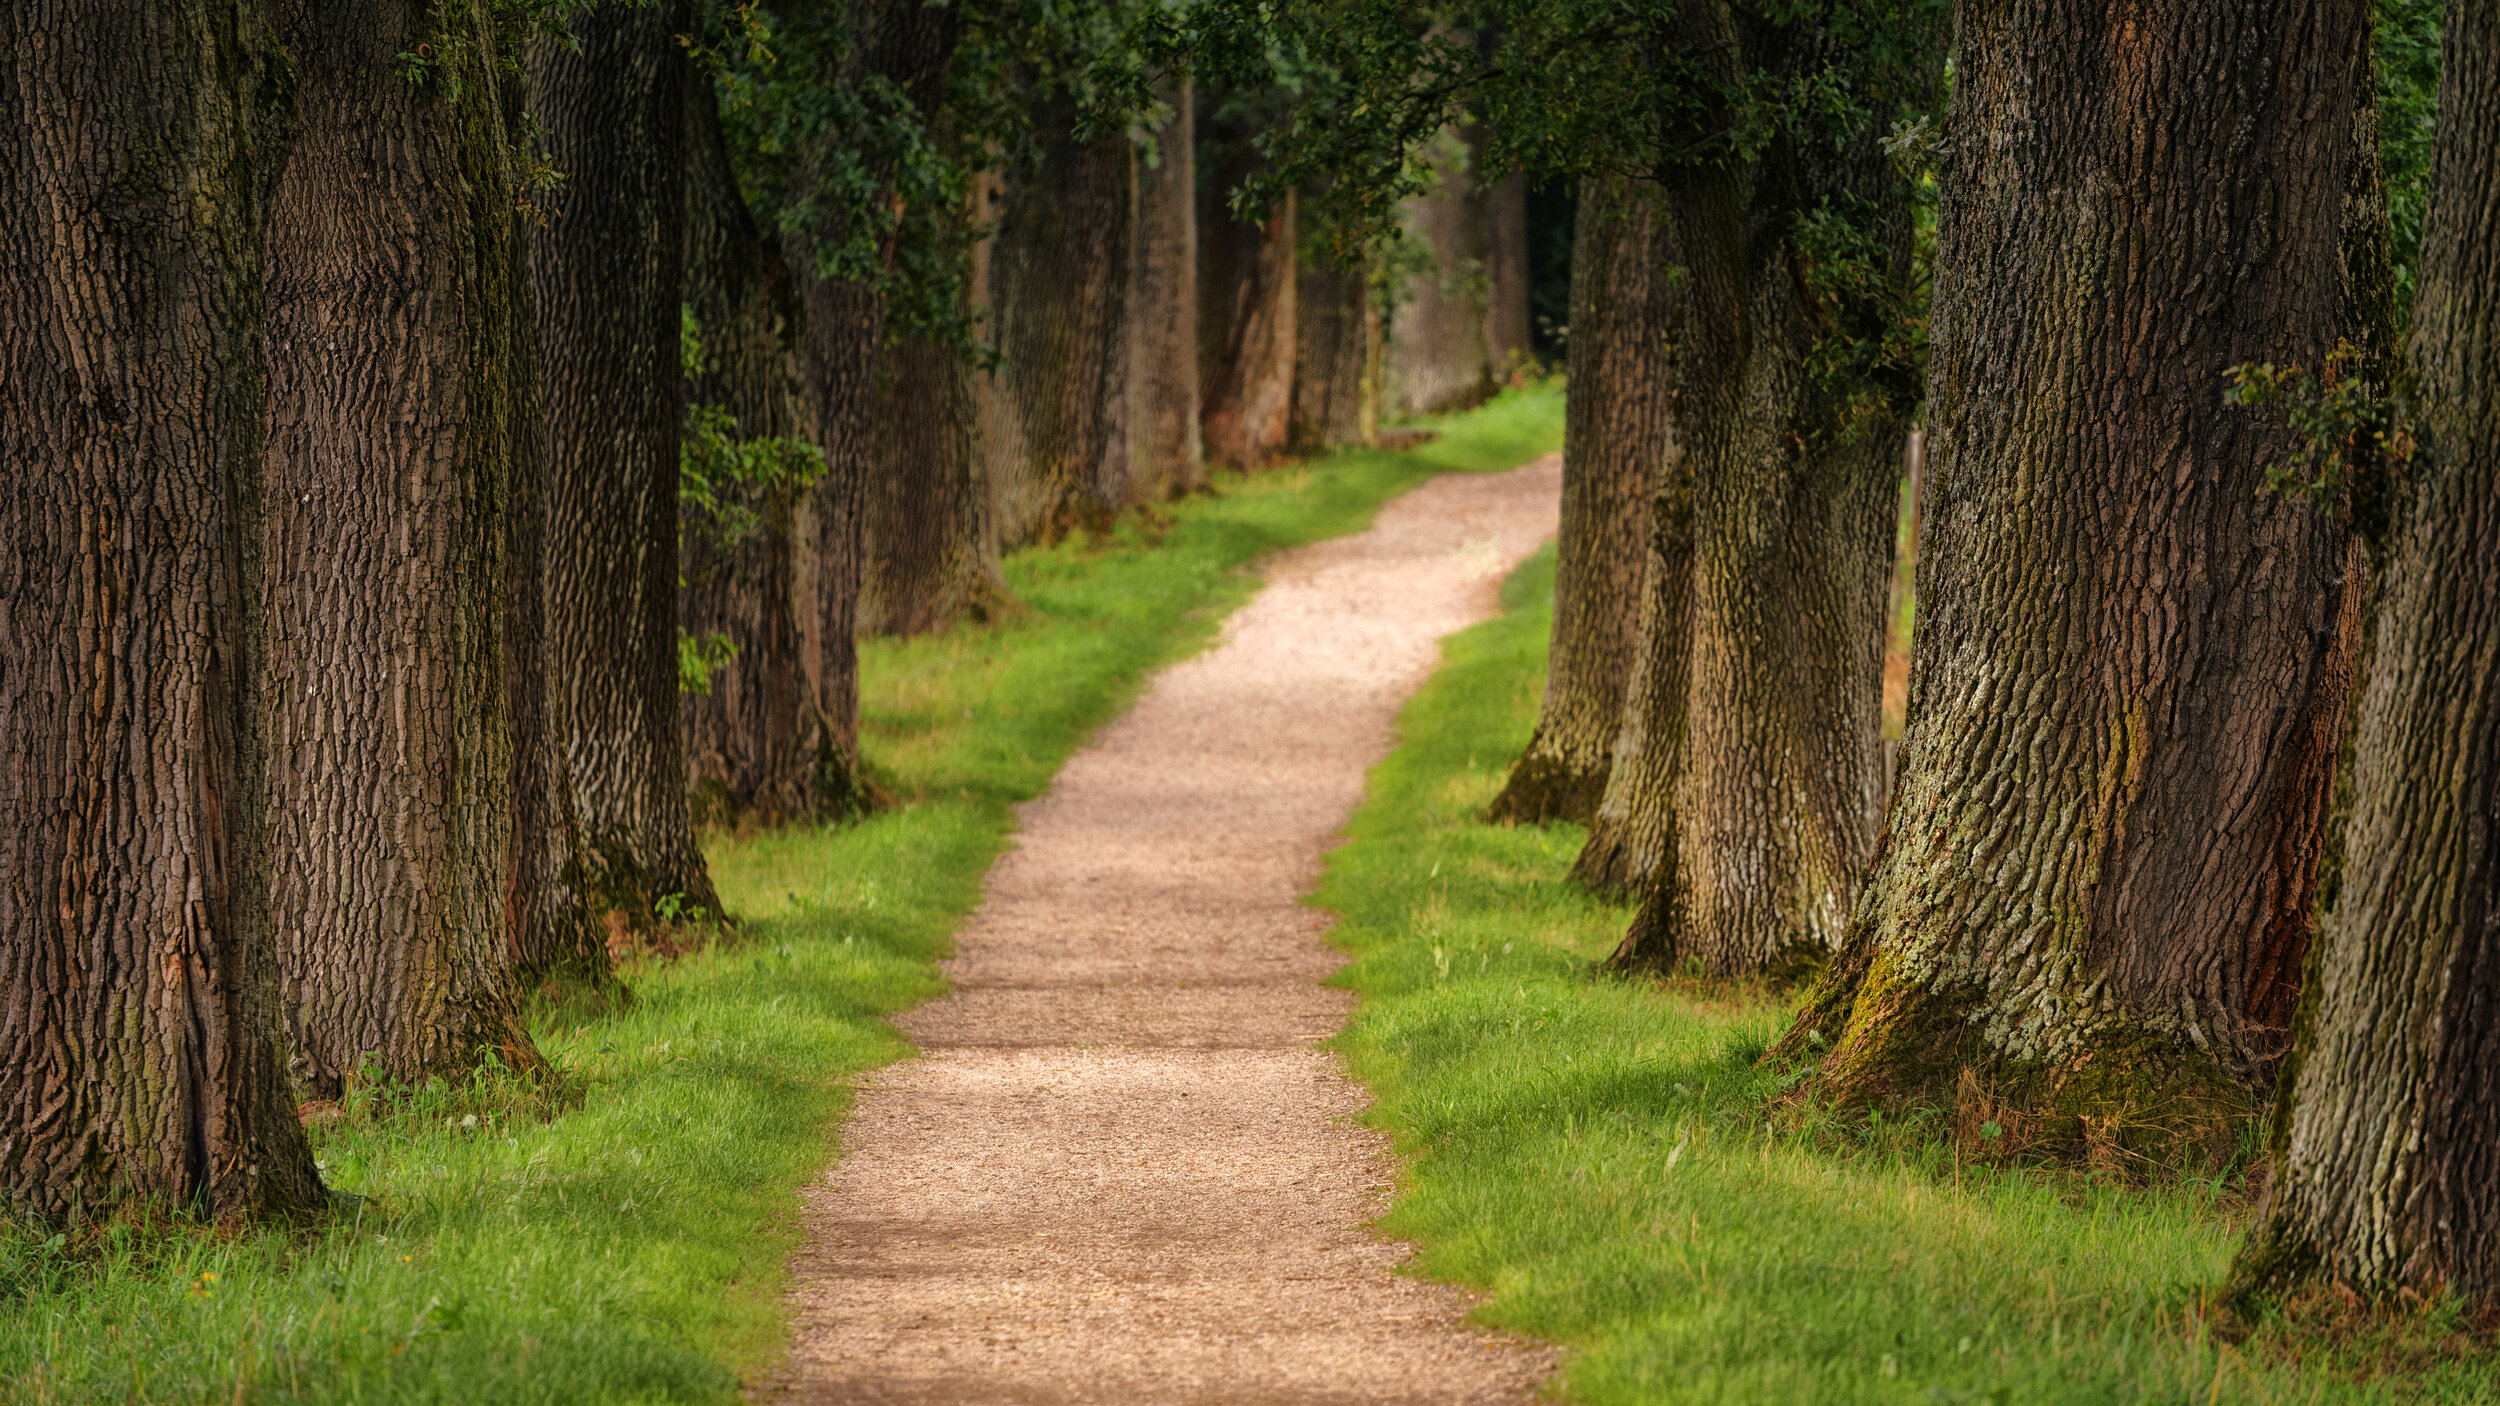 Discernment is about choosing the path that God is inviting us into -